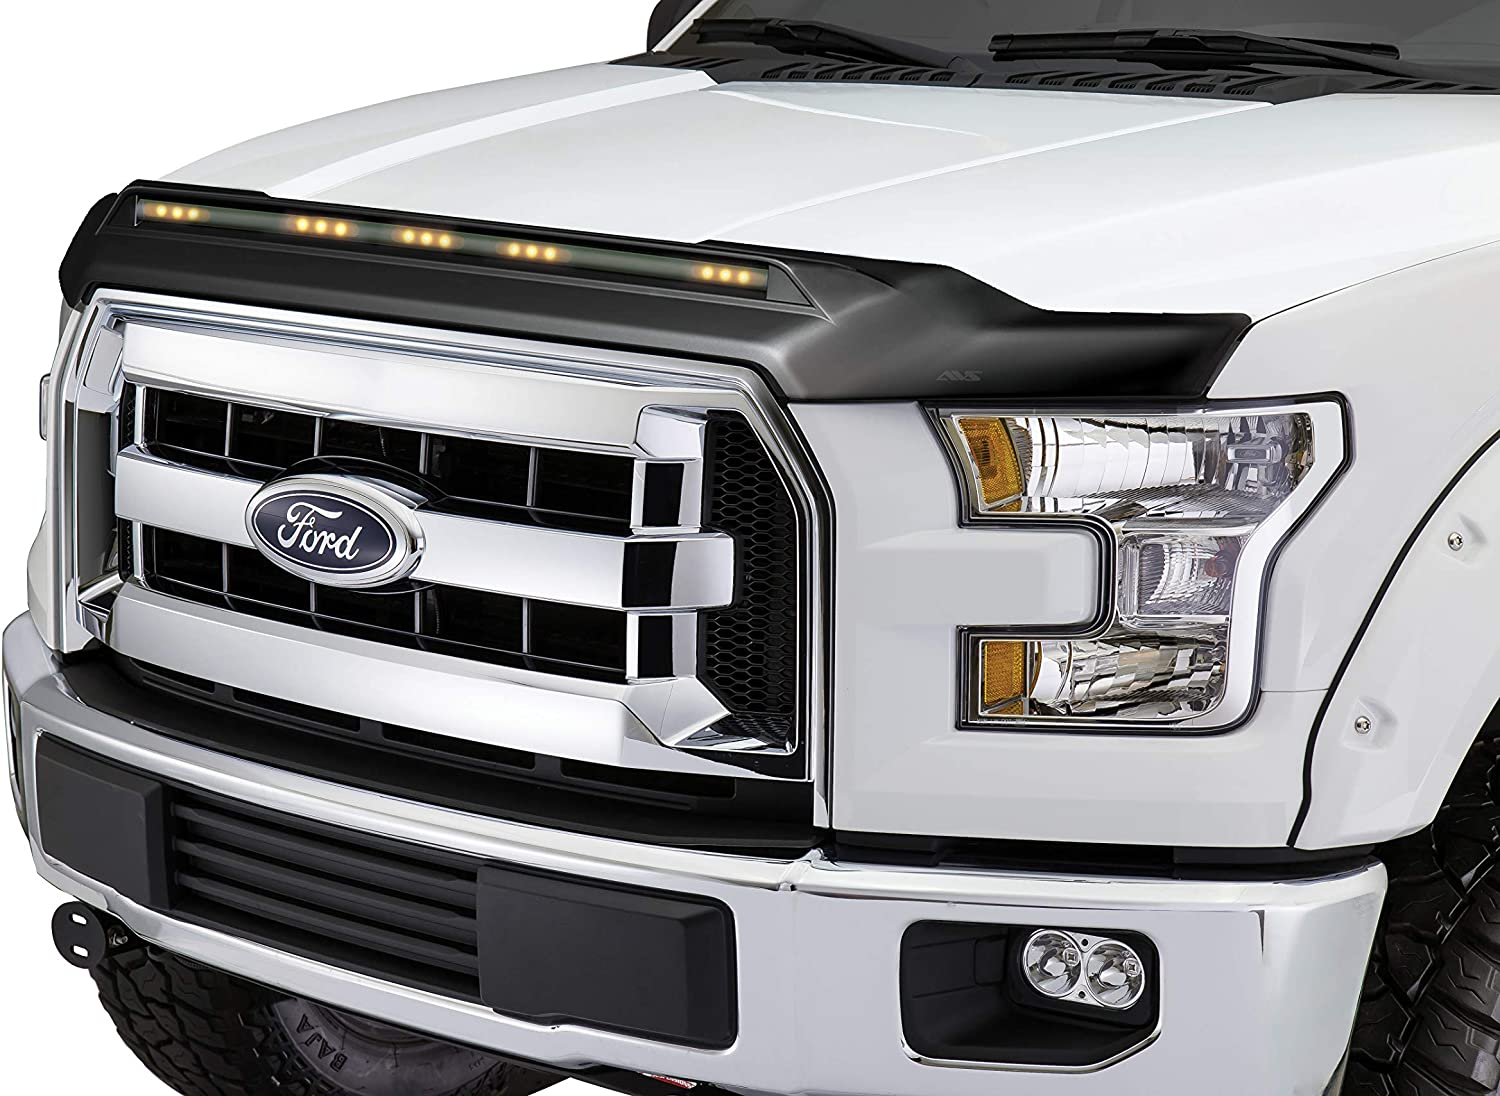 Details about  /AVS Bugflector Dark Smoke Hood Protector Shield For 1997-2003 Ford F-150-23454